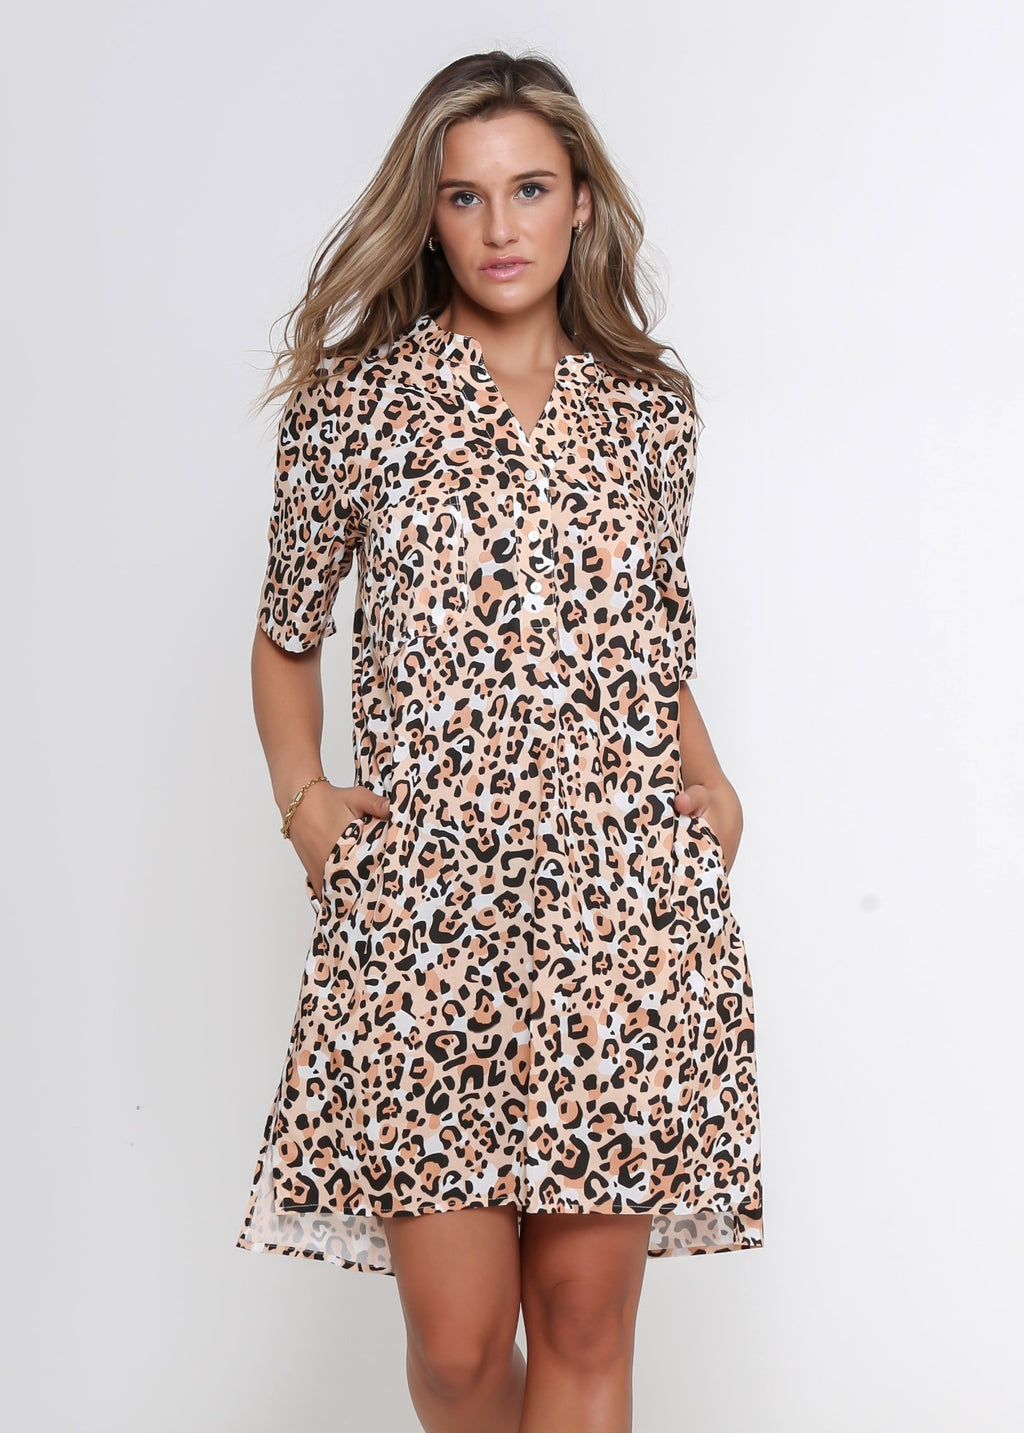 NEW - JEAN DRESS - SUMMER LEOPARD